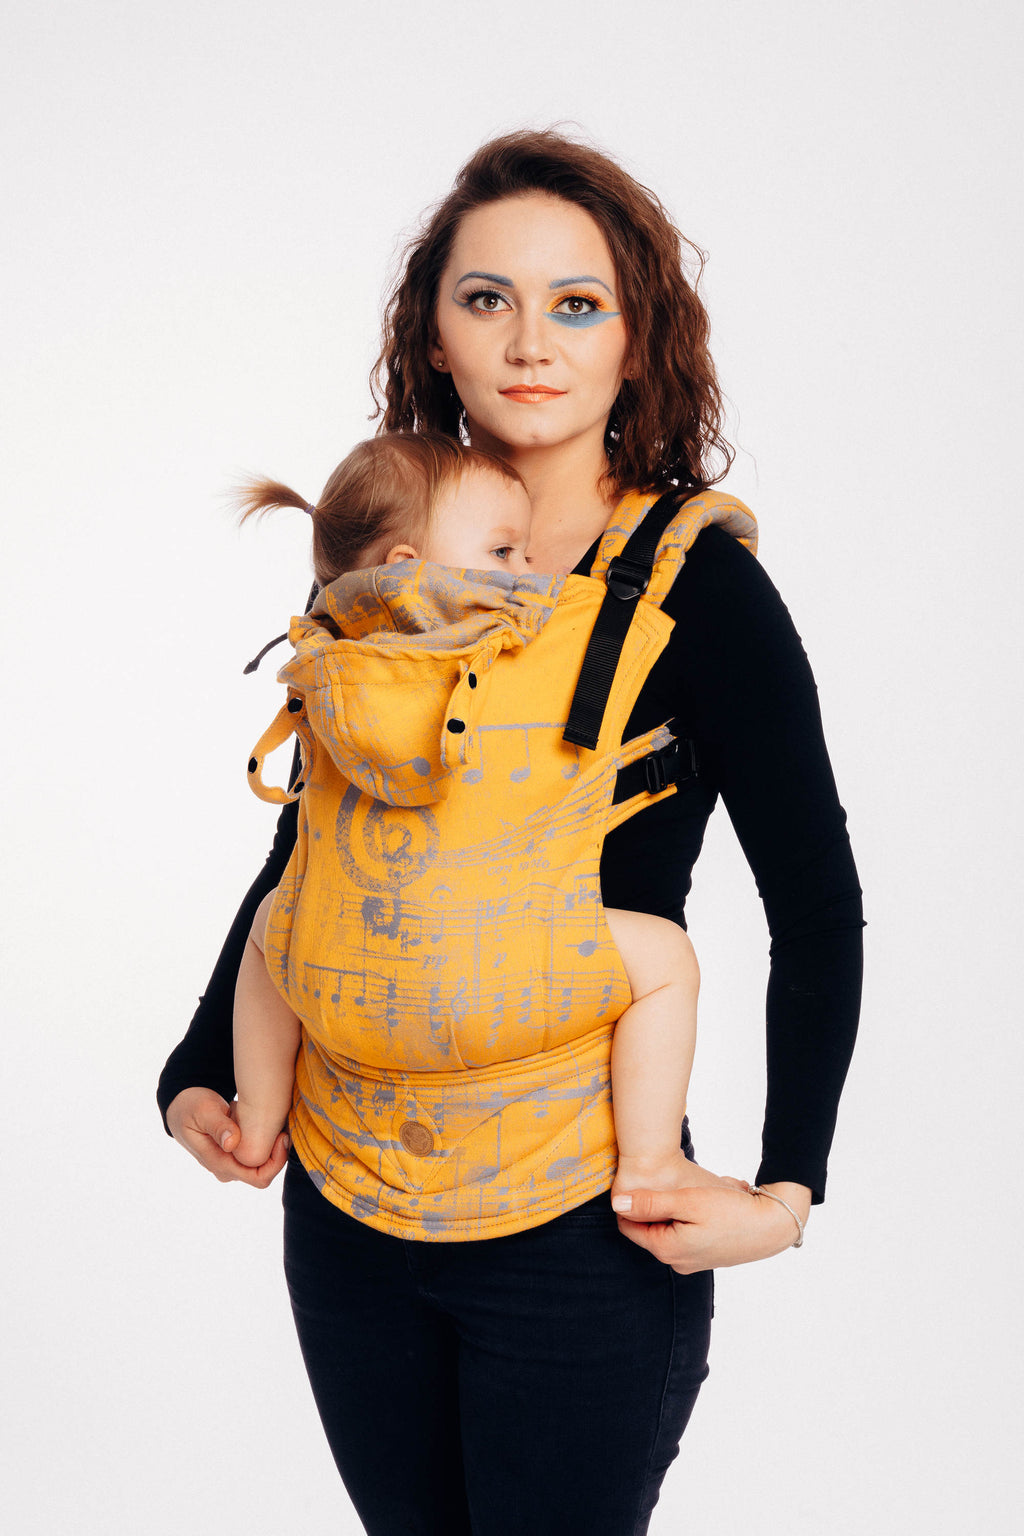 Lenny Lamb Symphony Sun Gift LennyGo Full Buckle Baby Carrier (Soft Structured Carrier SSC)